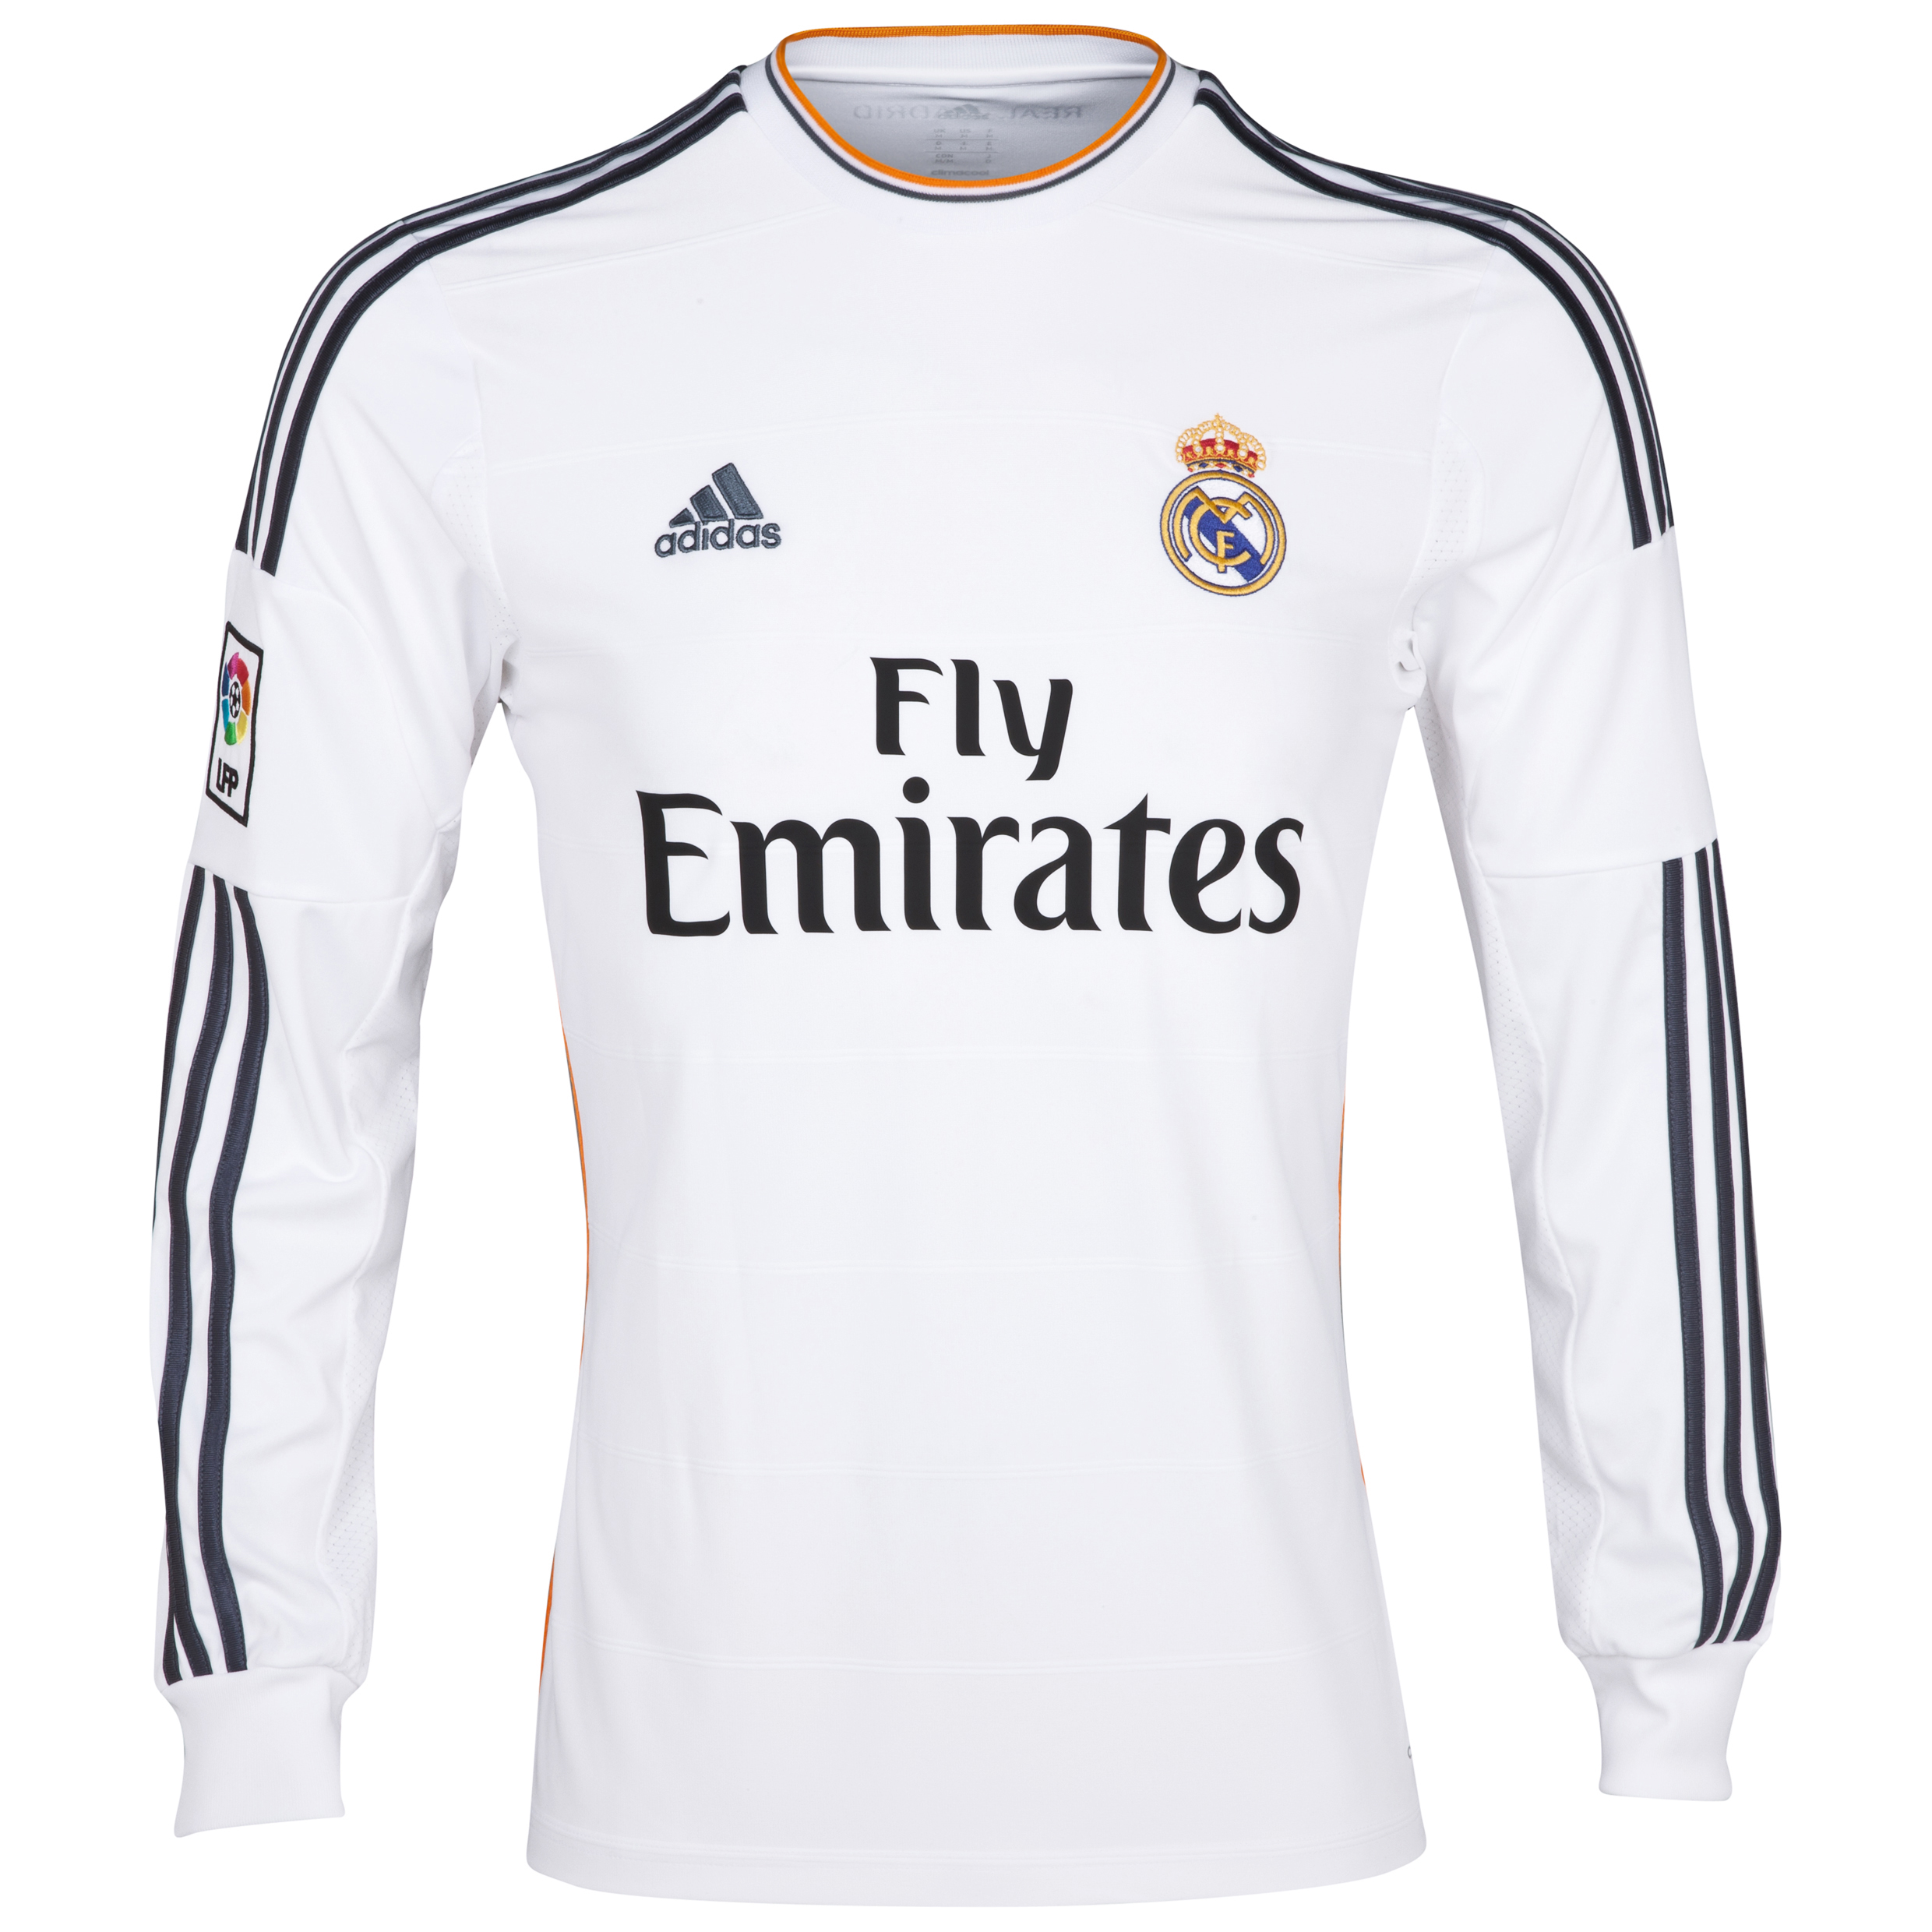 Buy Real Madrid Home Kit 2013/14 Long Sleeve